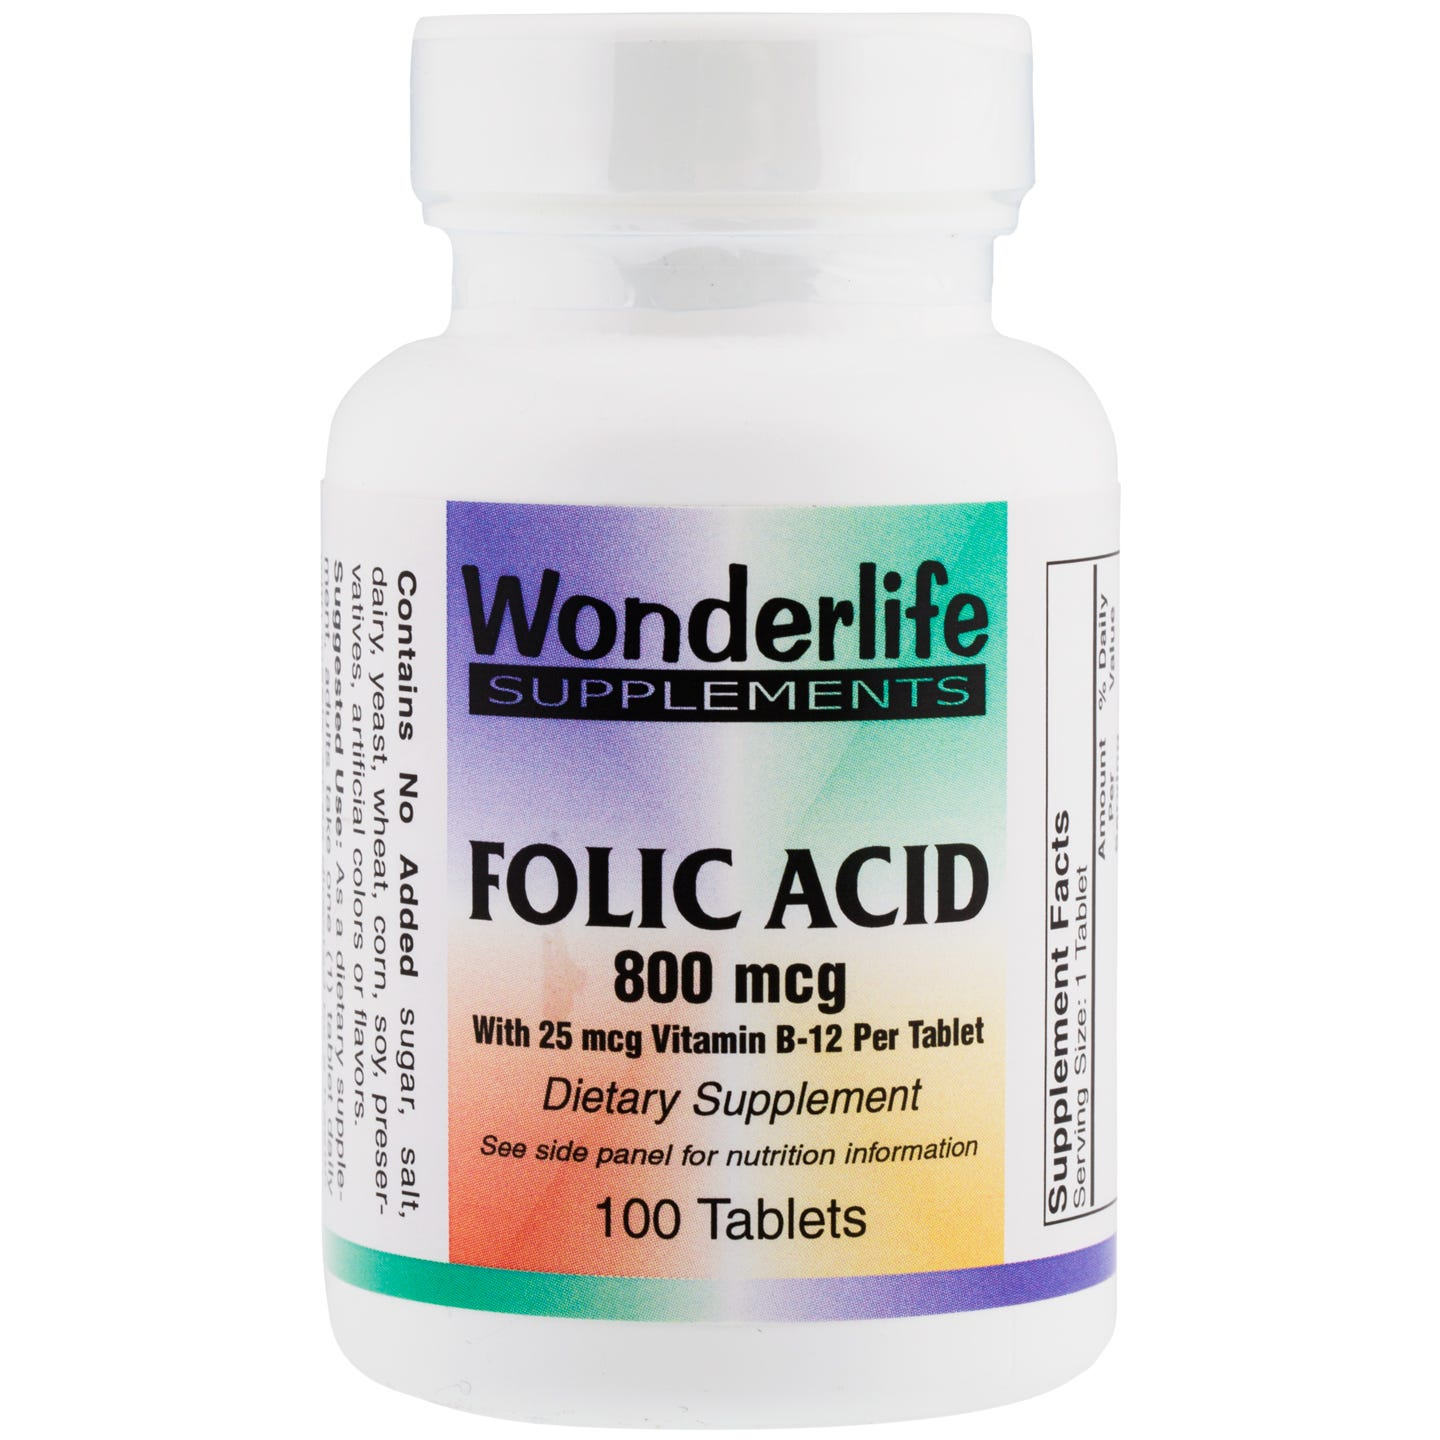 Folic Acid, 800 mcg (100 Tablets), Wonderlife - Rapid Diet Weight Loss Products Shop